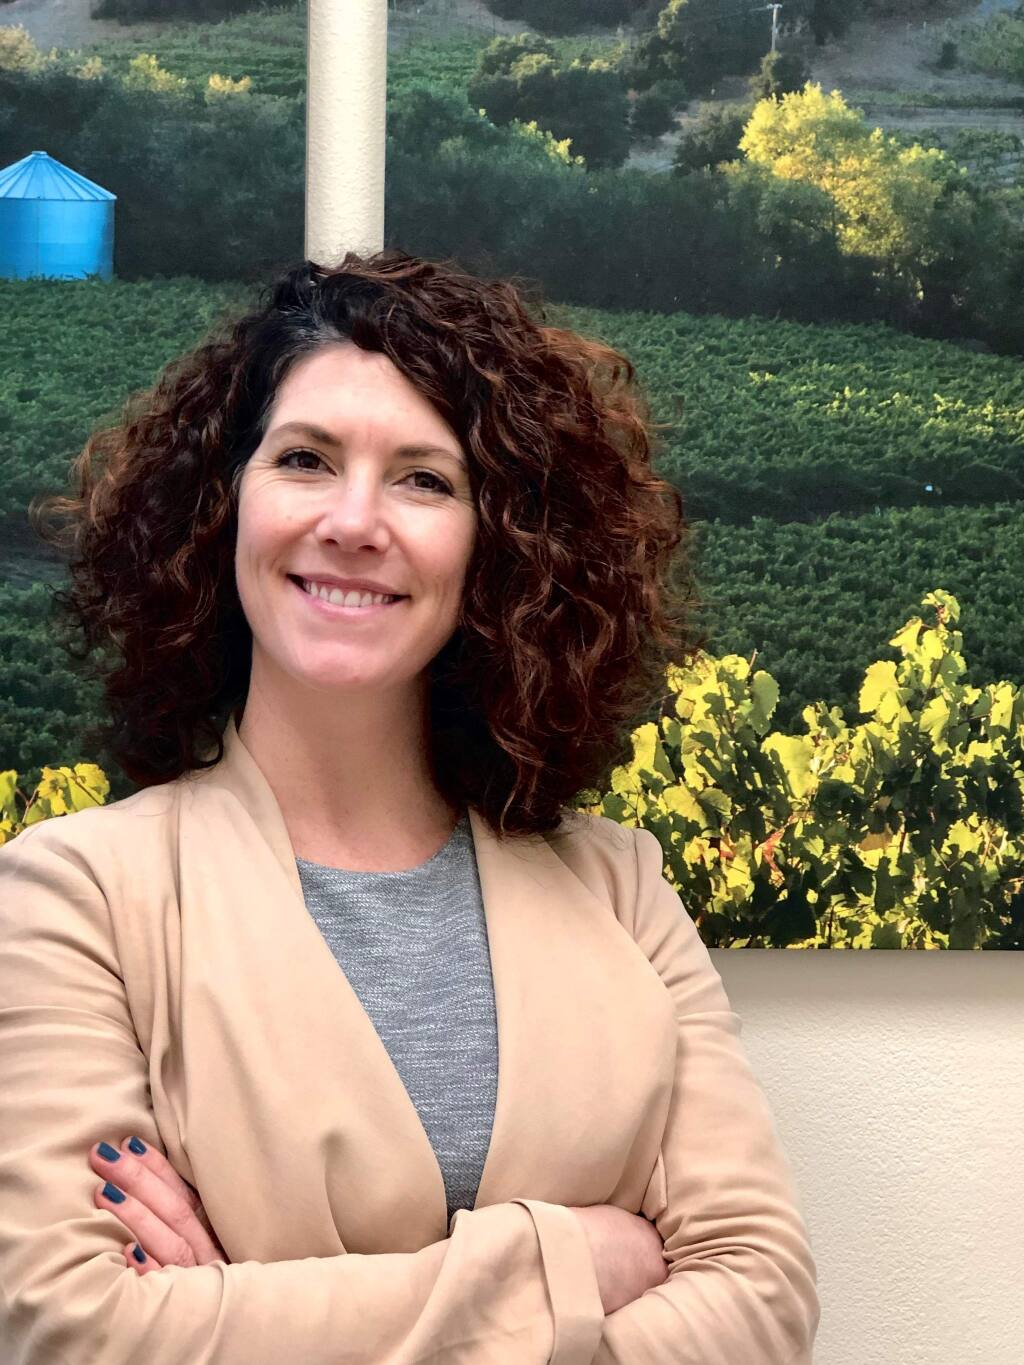 Tara Johnson, assistant vice president and Healdsburg branch manager II for Novato-based Bank of Marin, is one of North Bay Business Journal's Forty Under 40 notable young professionals for 2019. (PROVIDED PHOTO)